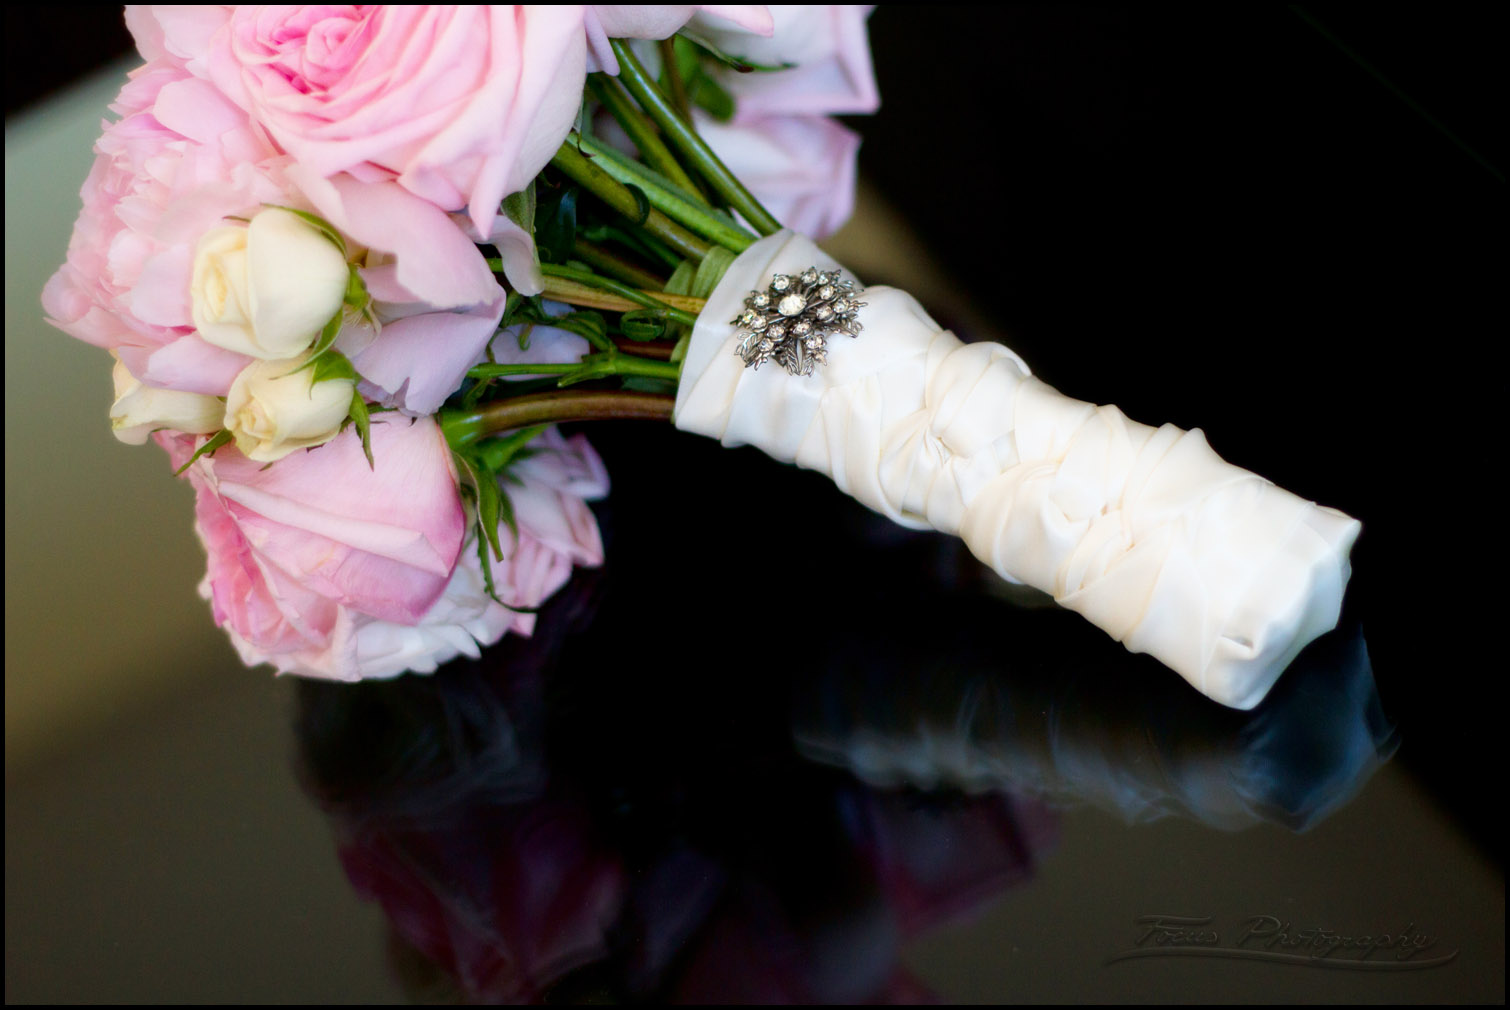 brooch on flower bouquet at wedding in Newburyport. Wedding photographers Focus Photography